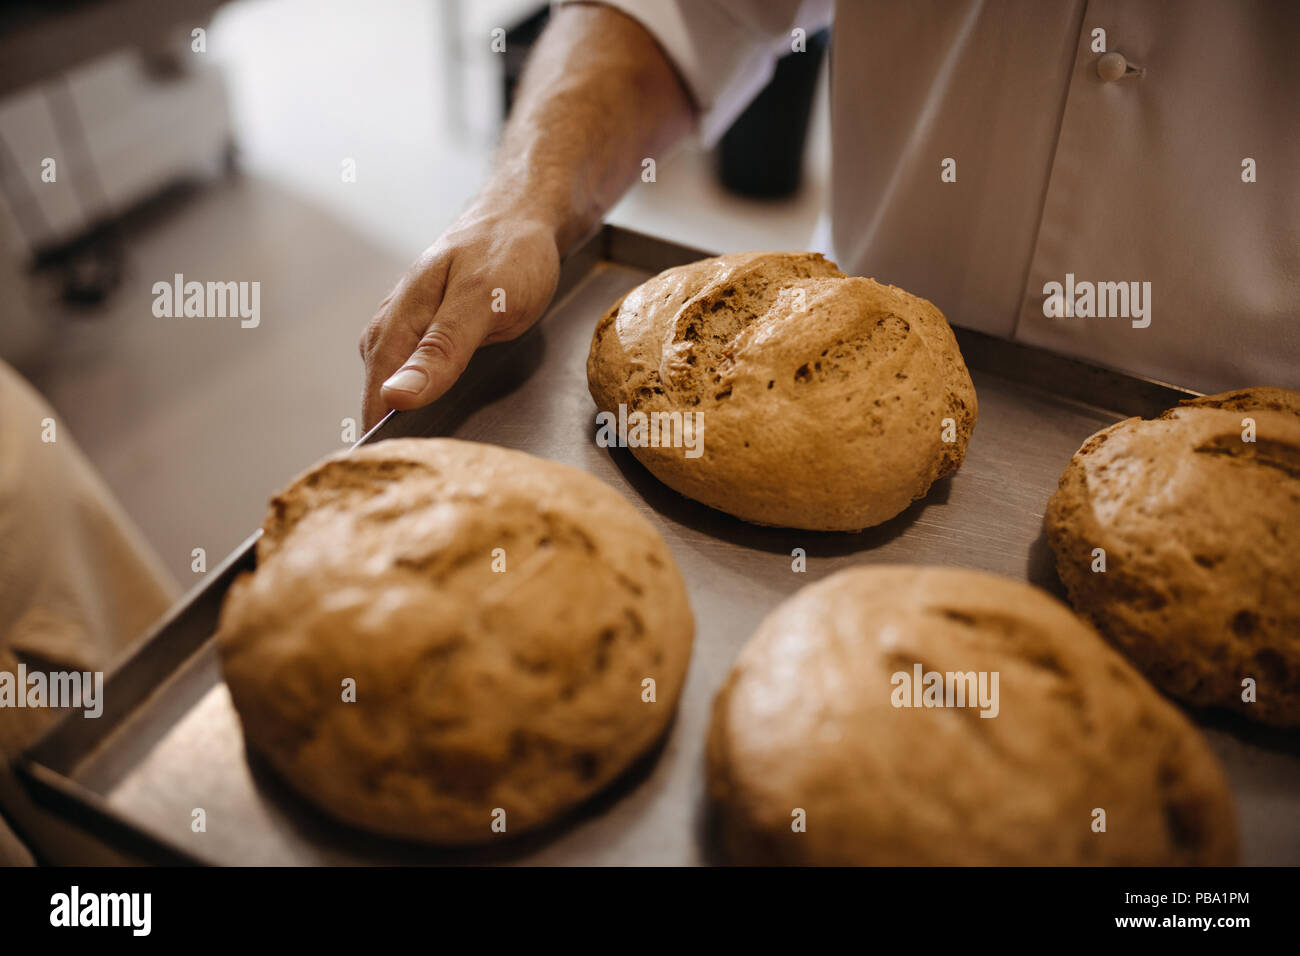 Close up of freshly baked bread on a baking tray in hand of a baker. Man moving a tray of freshly baked bread in a bakery. Stock Photo